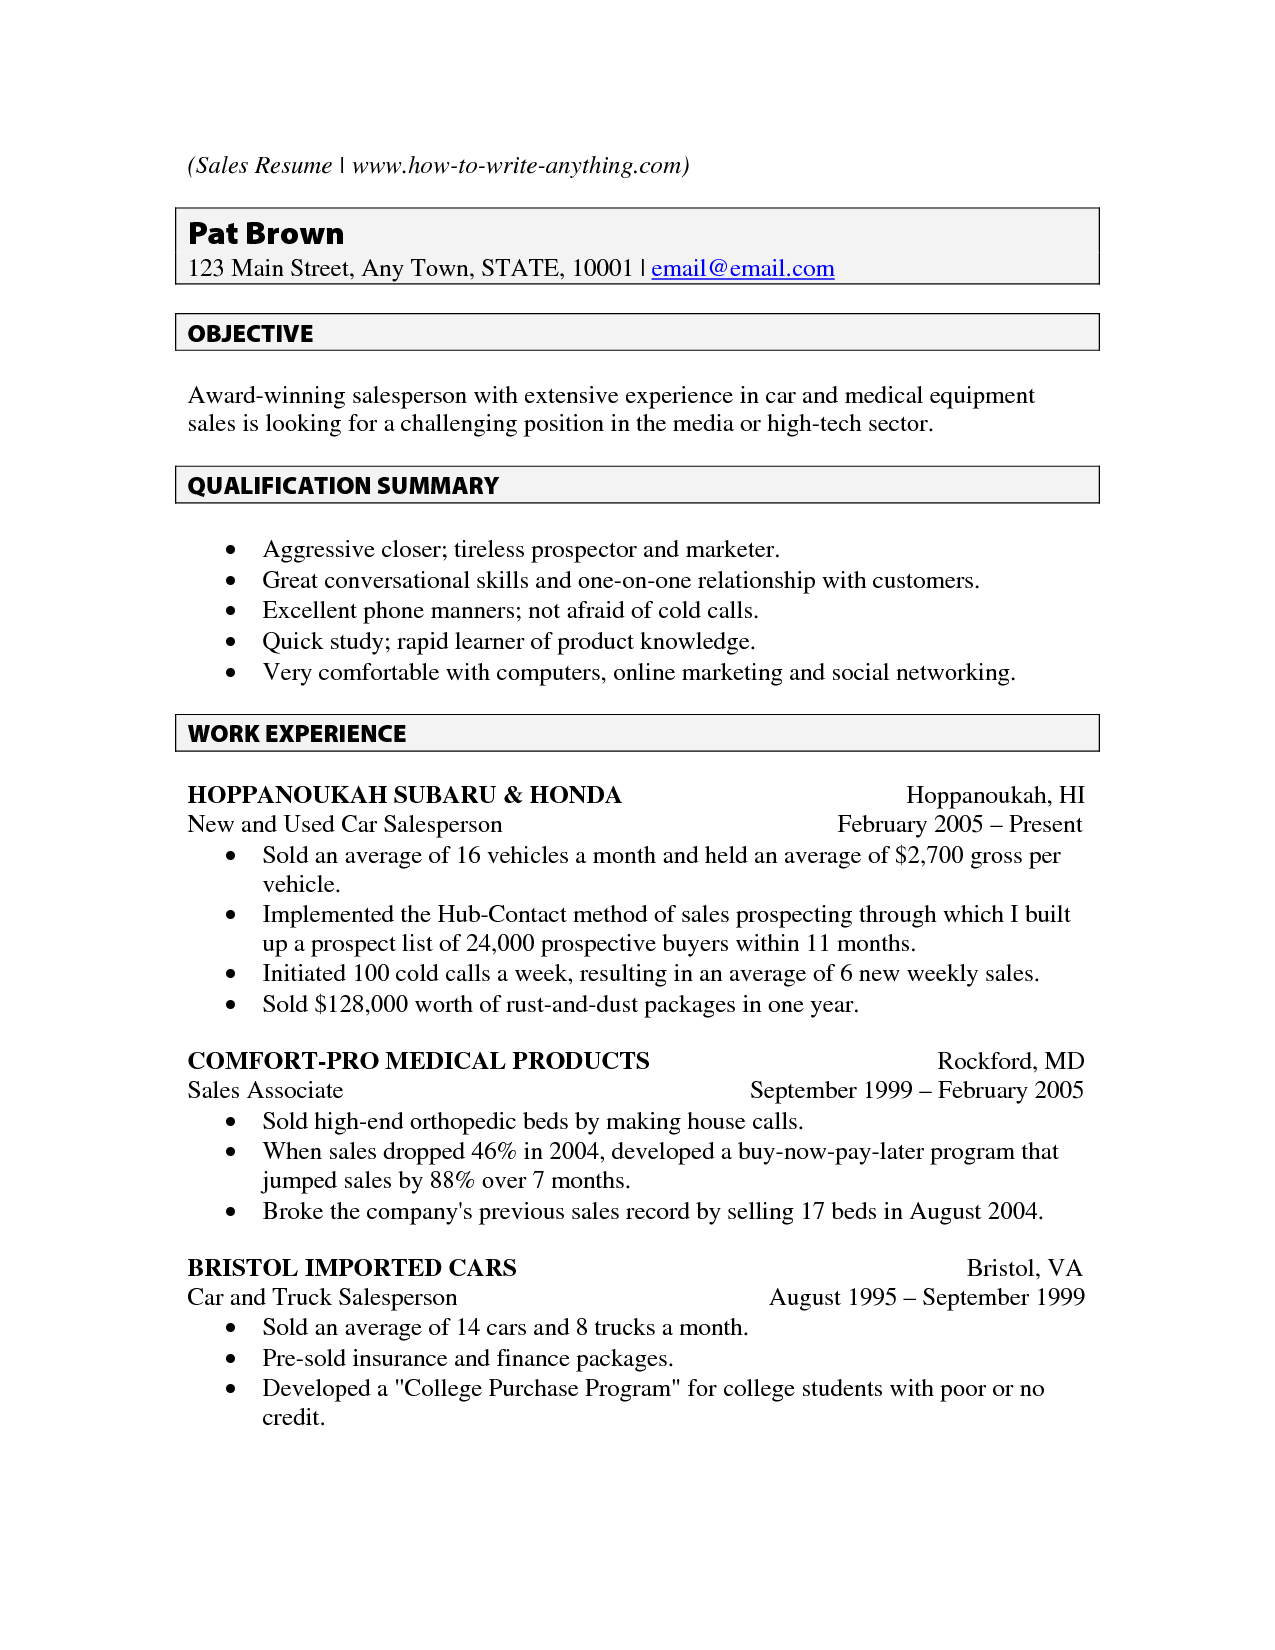 Writing An Objective For Resume Programmer Resume Sample  Resume  Pinterest  Resume Examples